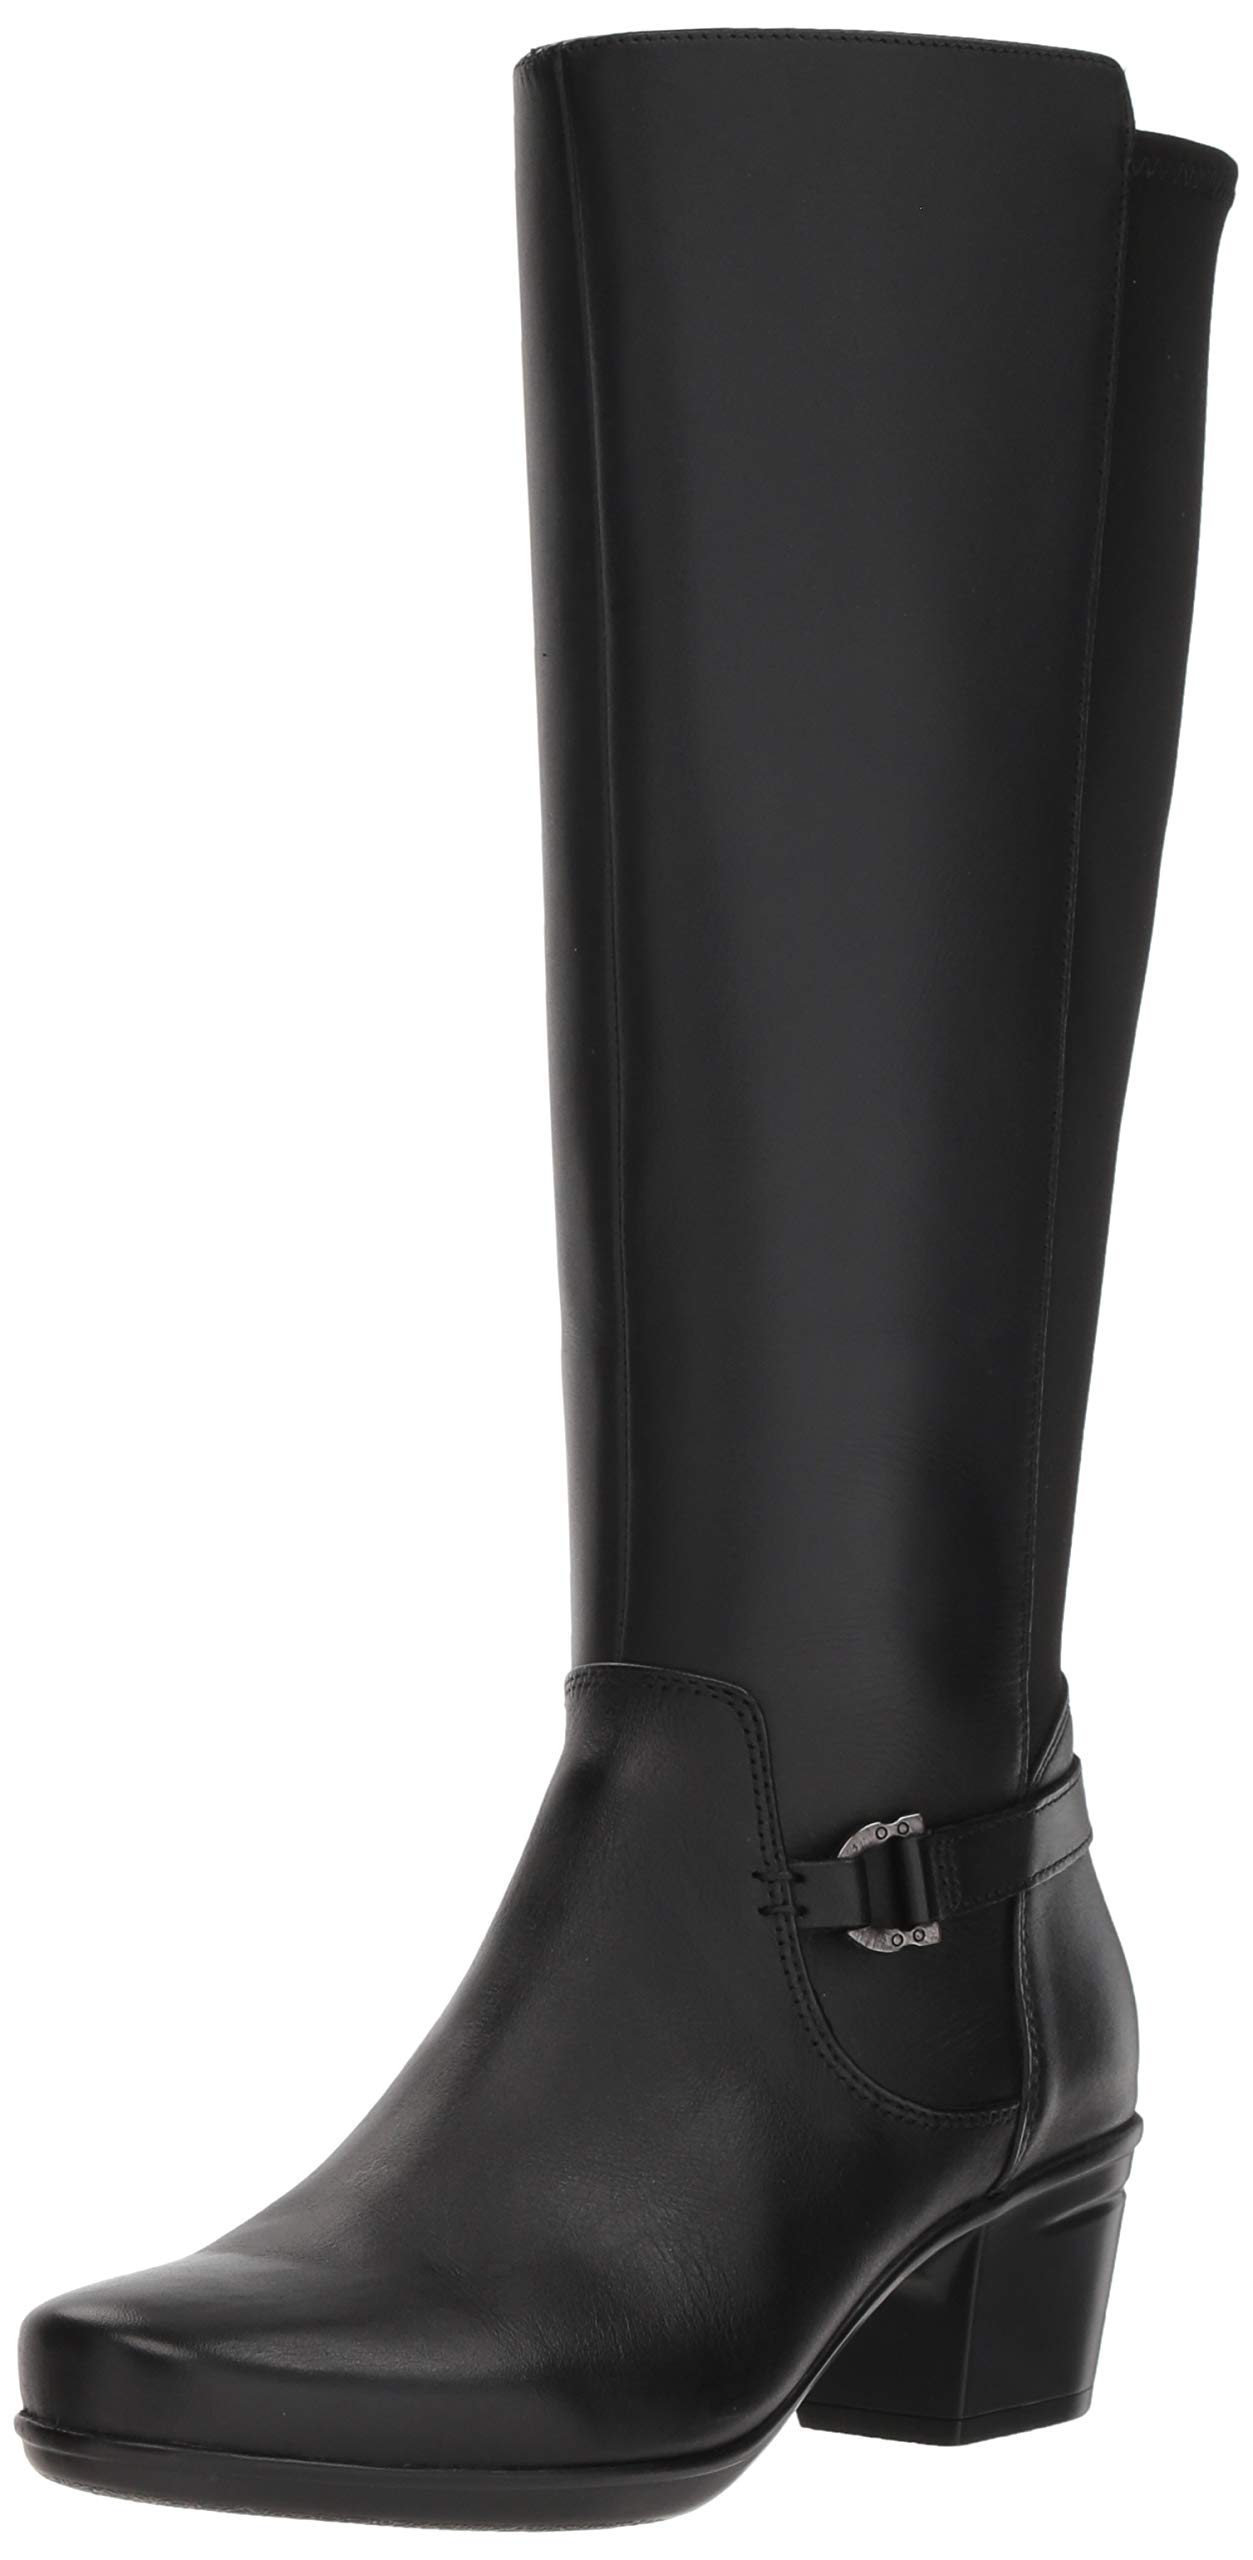 Clarks Women's Emslie March Fashion Boot, Black Leather, 7 M US by CLARKS